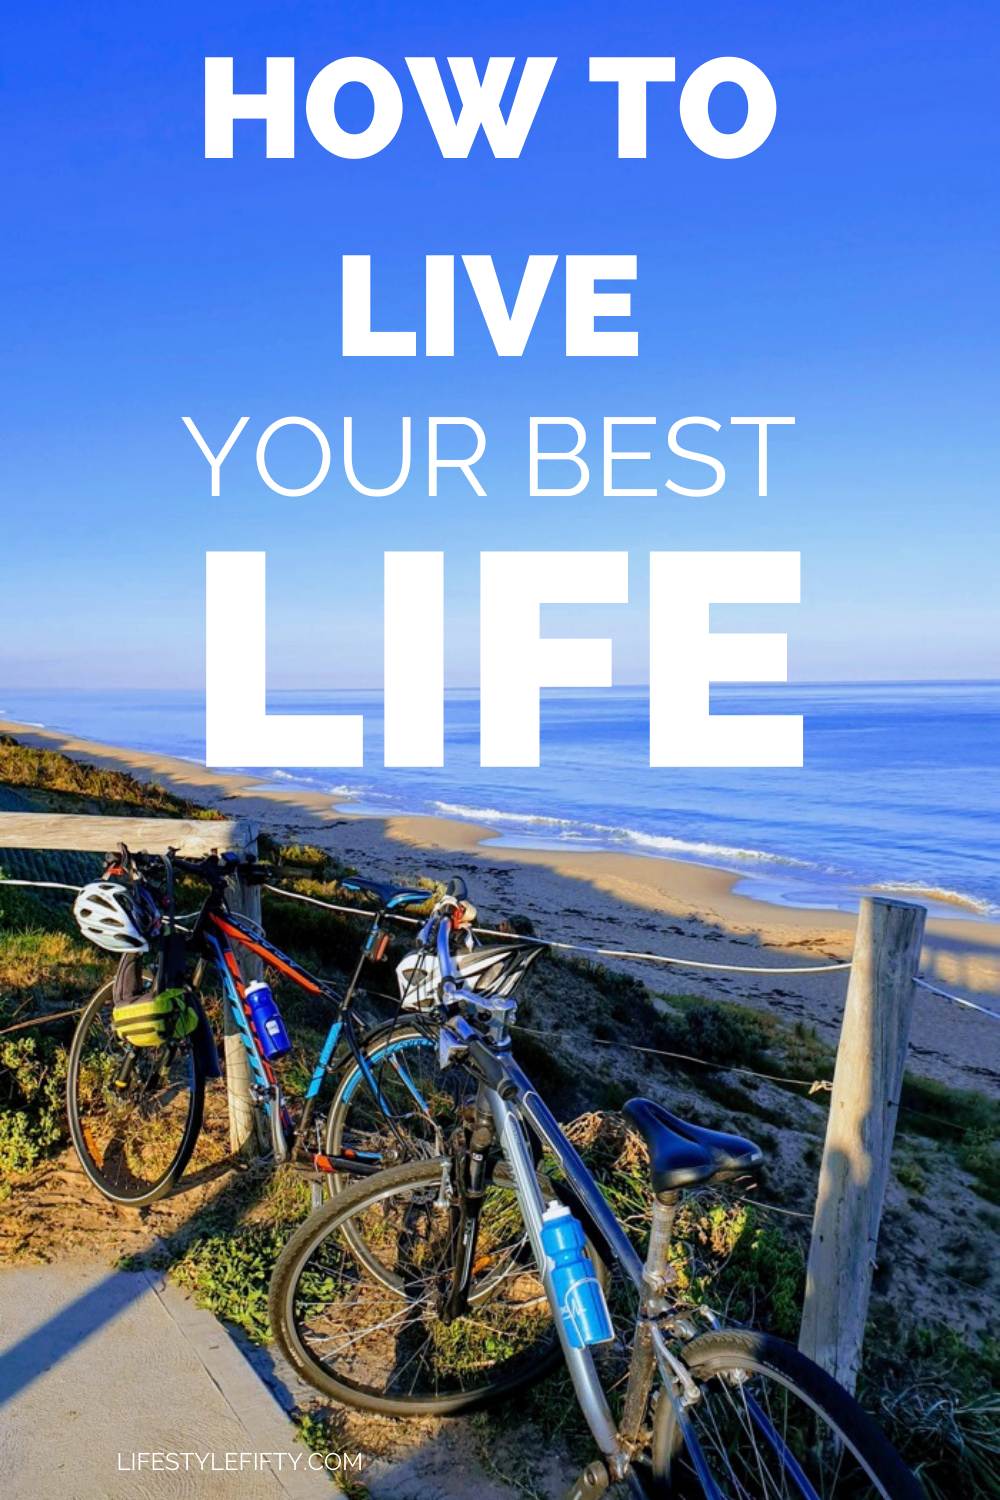 Bicycle and ocean scene from the post How to Live your Best Life